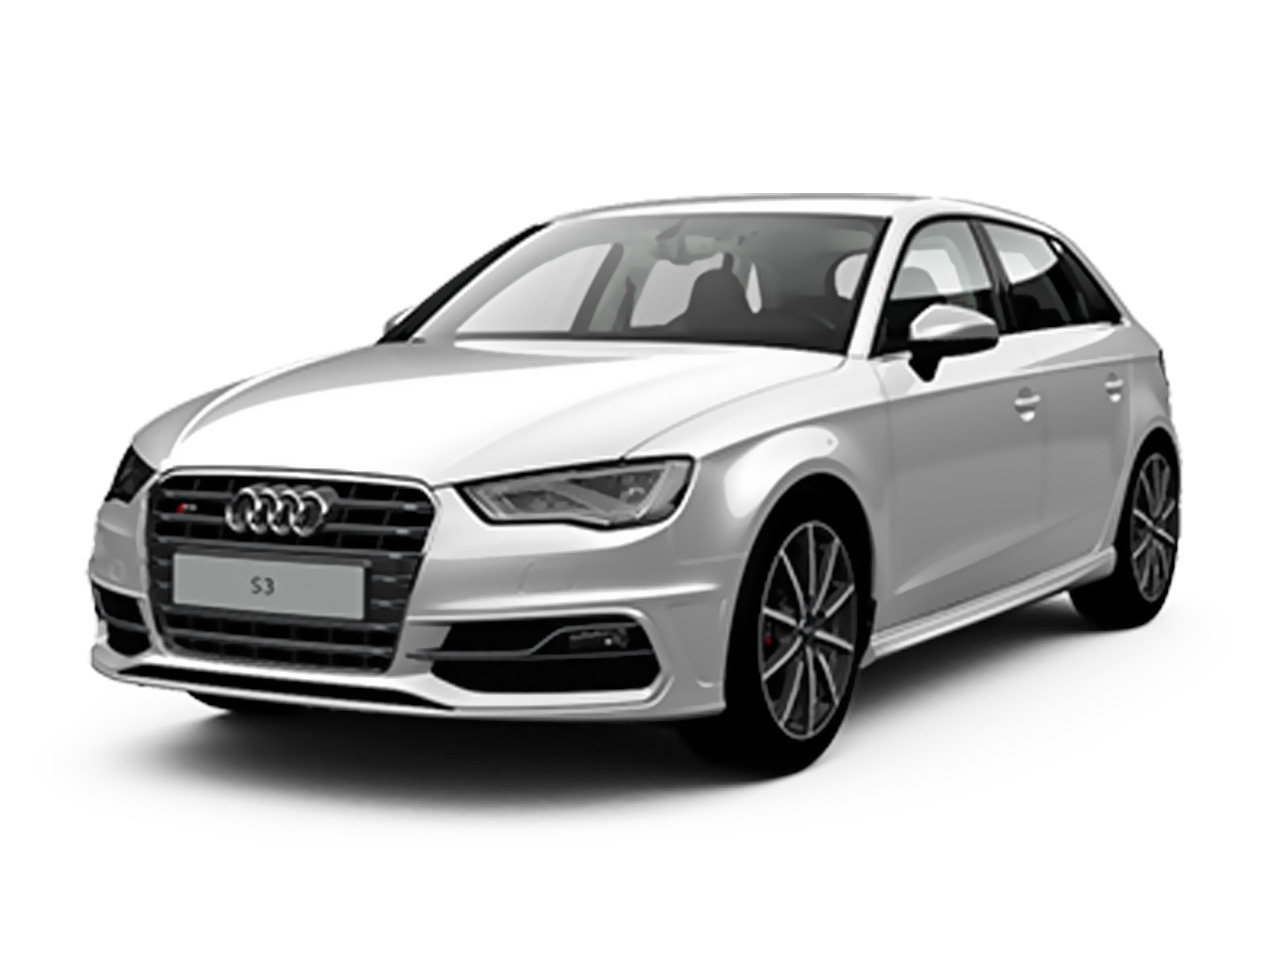 Audi In Kuwait Kuwait City New Car Prices Reviews - All audi a models